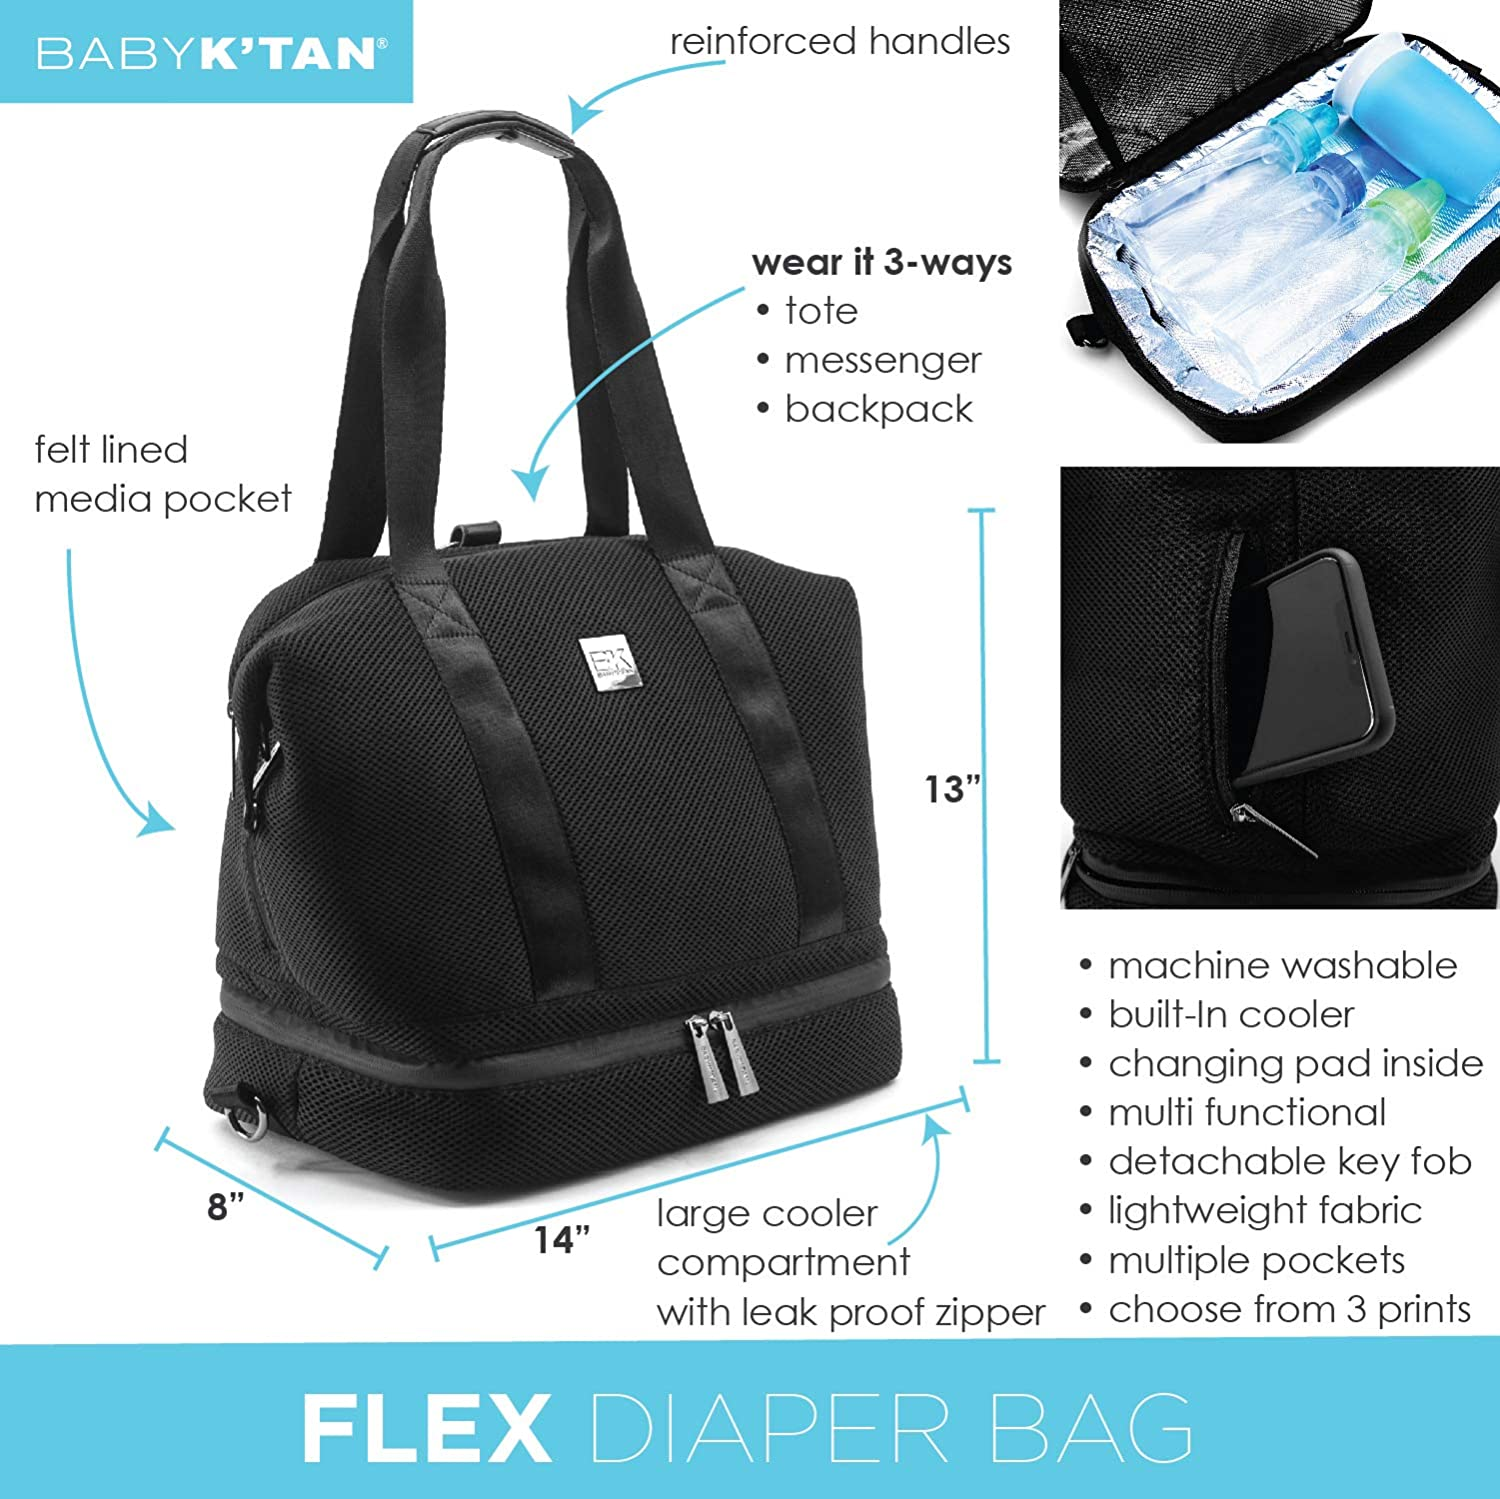 Baby K'tan Flex Diaper Bag - Black Mesh